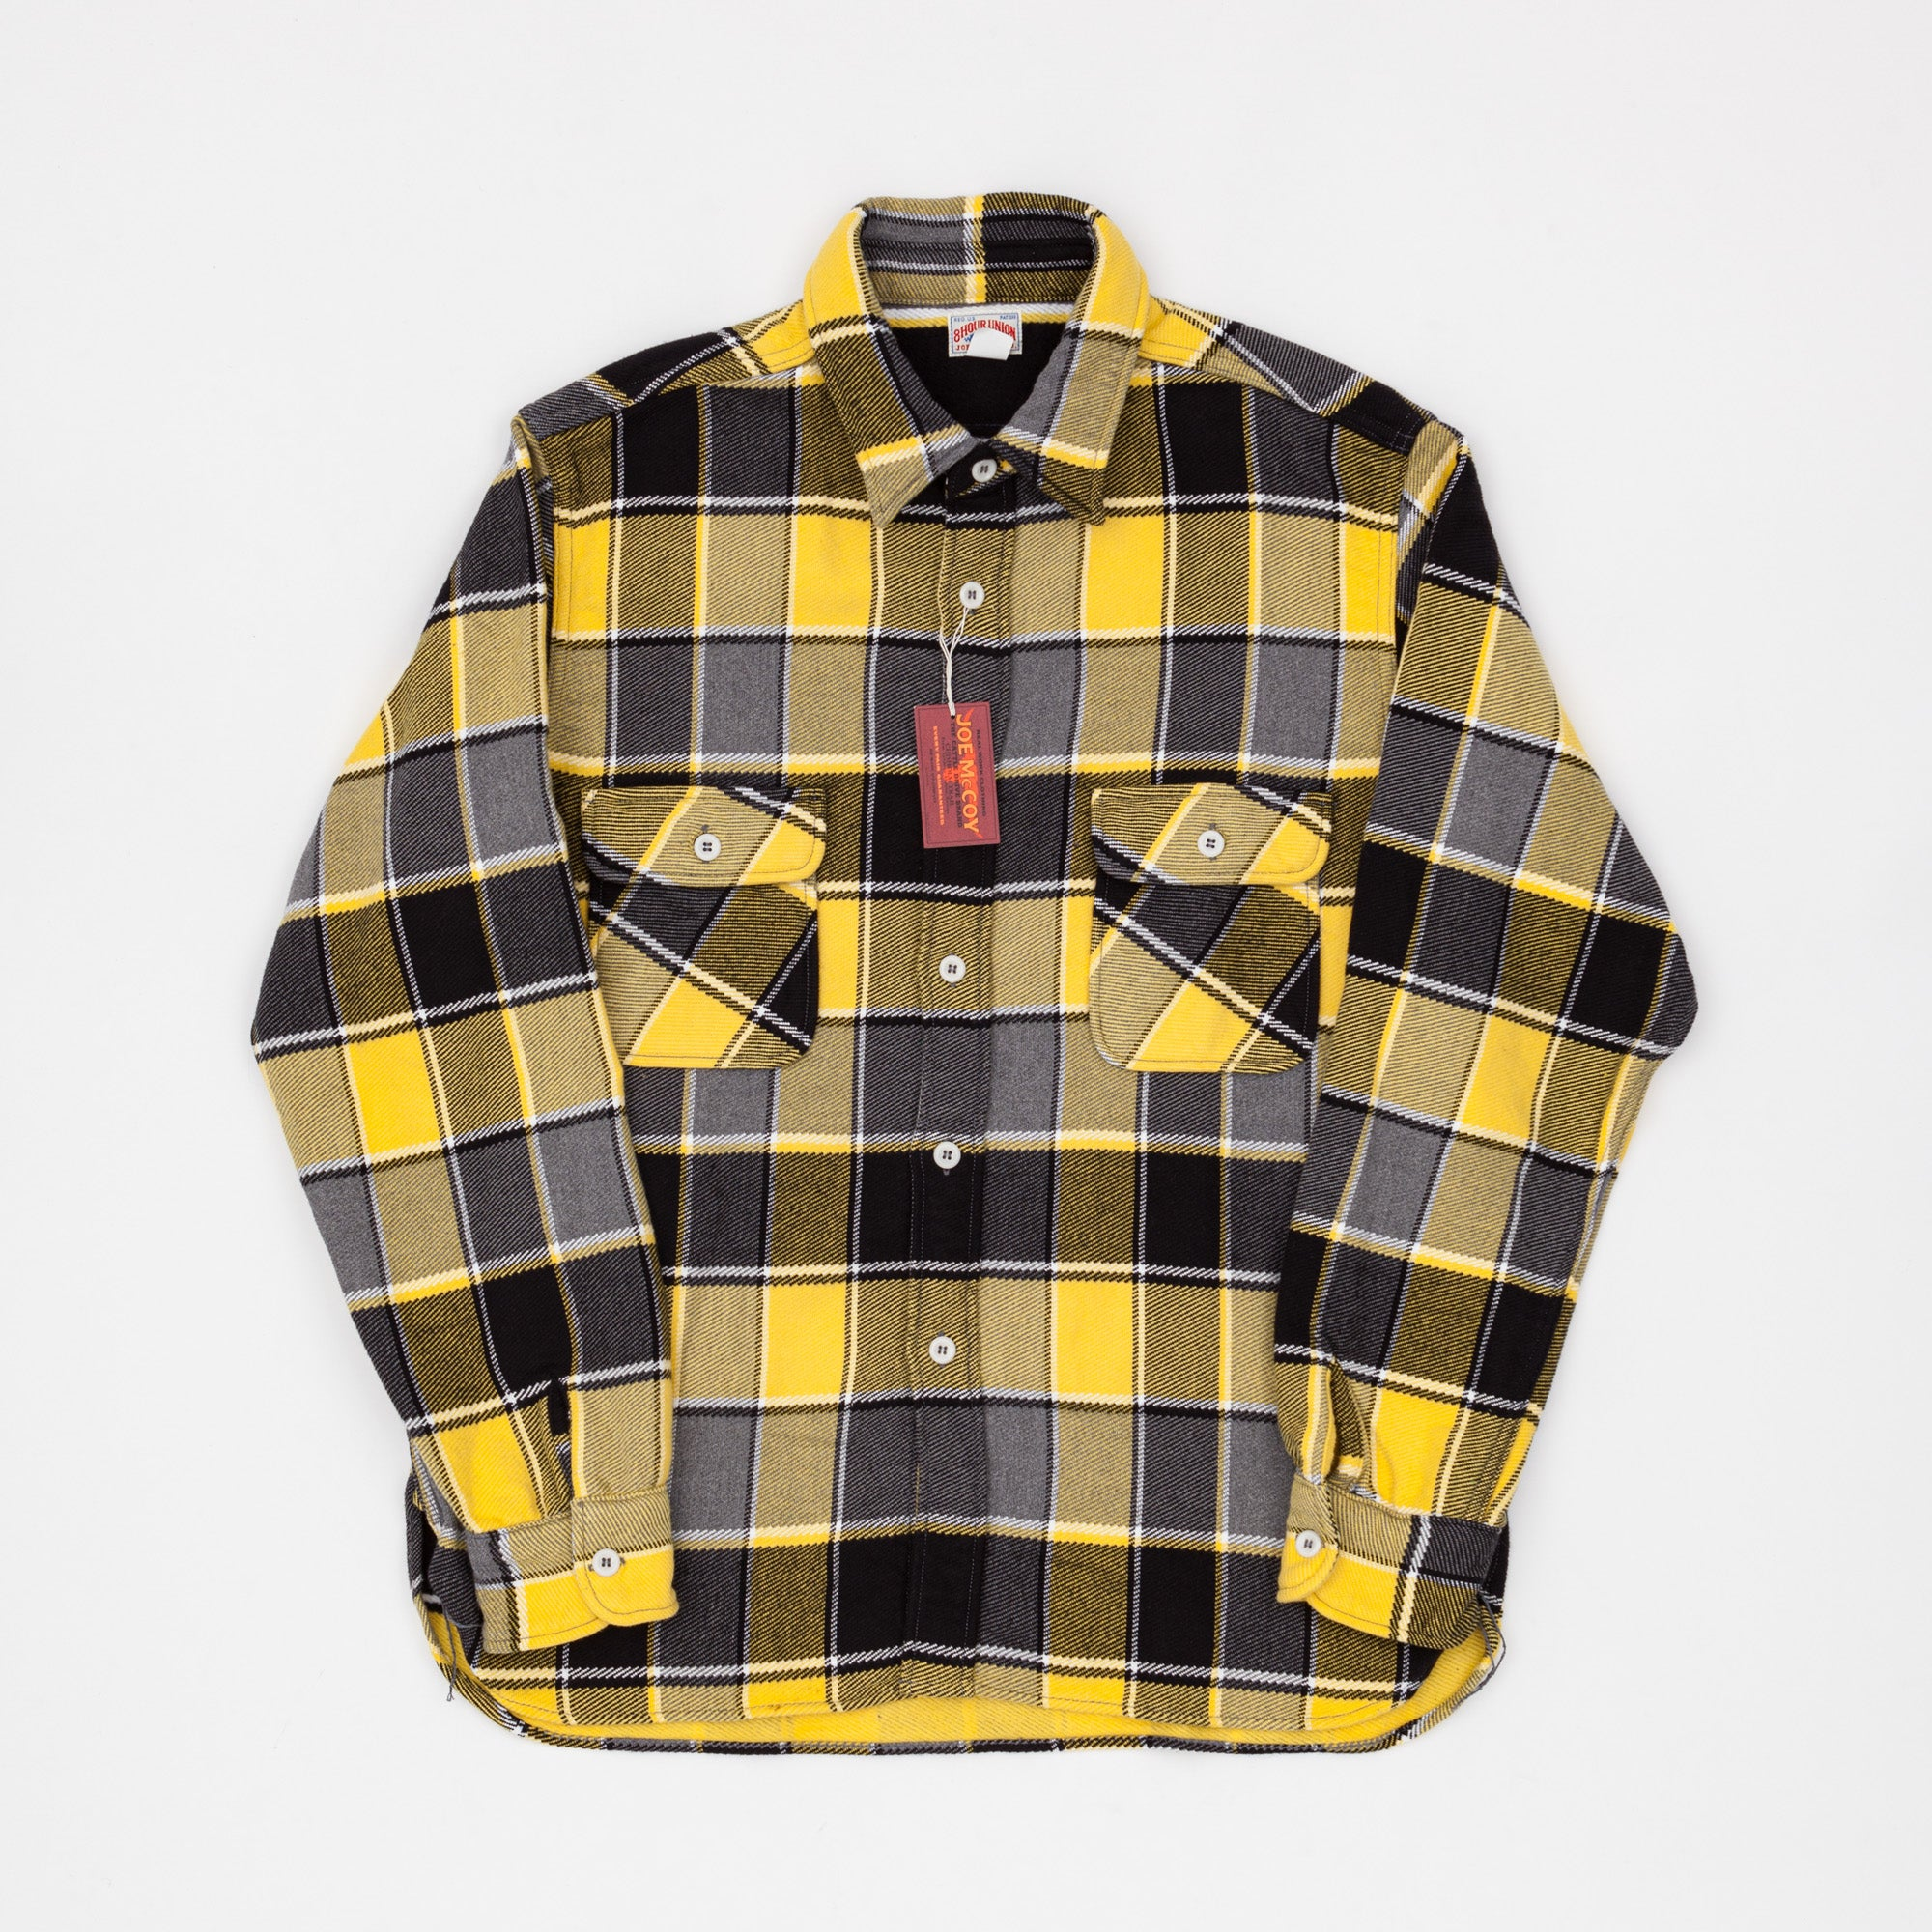 Joe McCoy 8HU Napped Flanel Shirt / Tongass Plaid